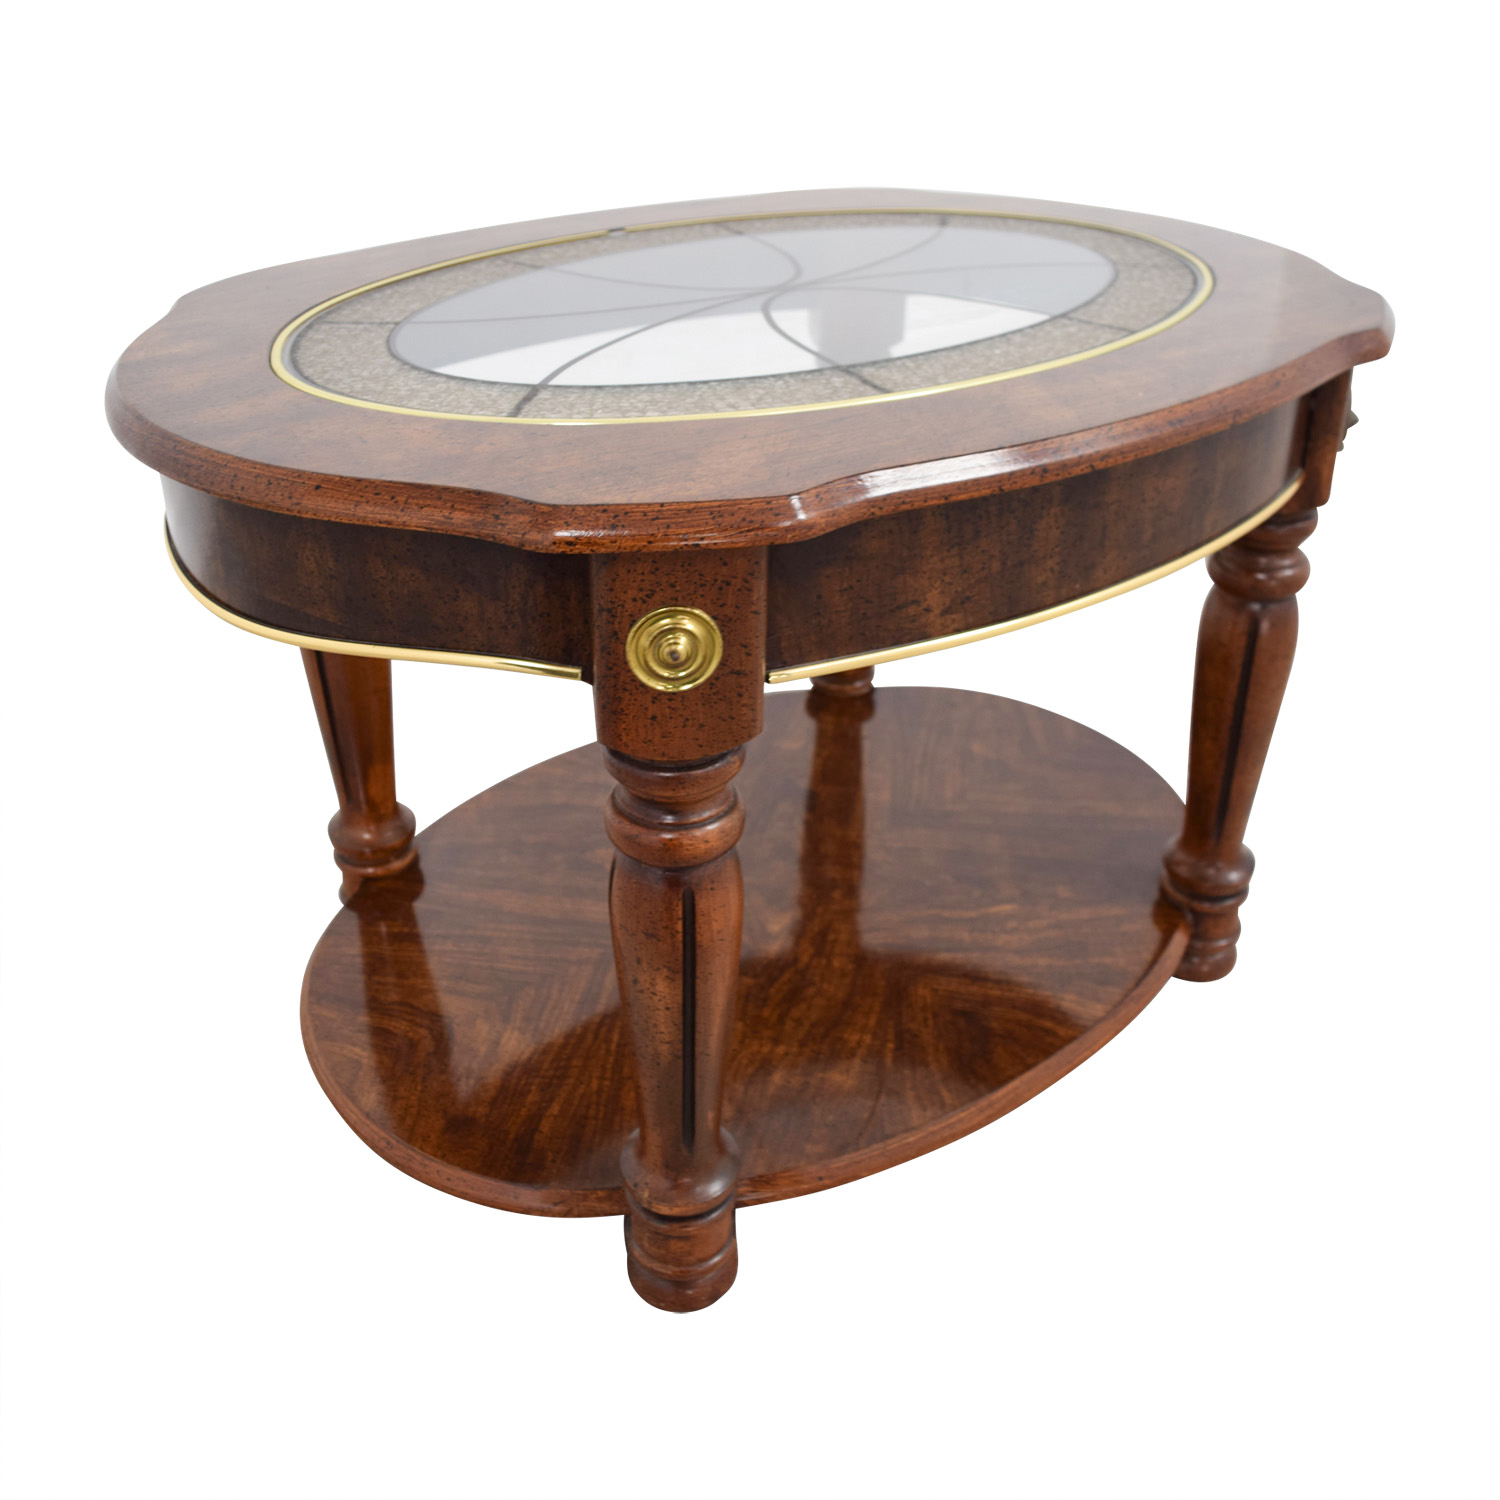 80 Off Vintage Small Round Coffee Table Tables